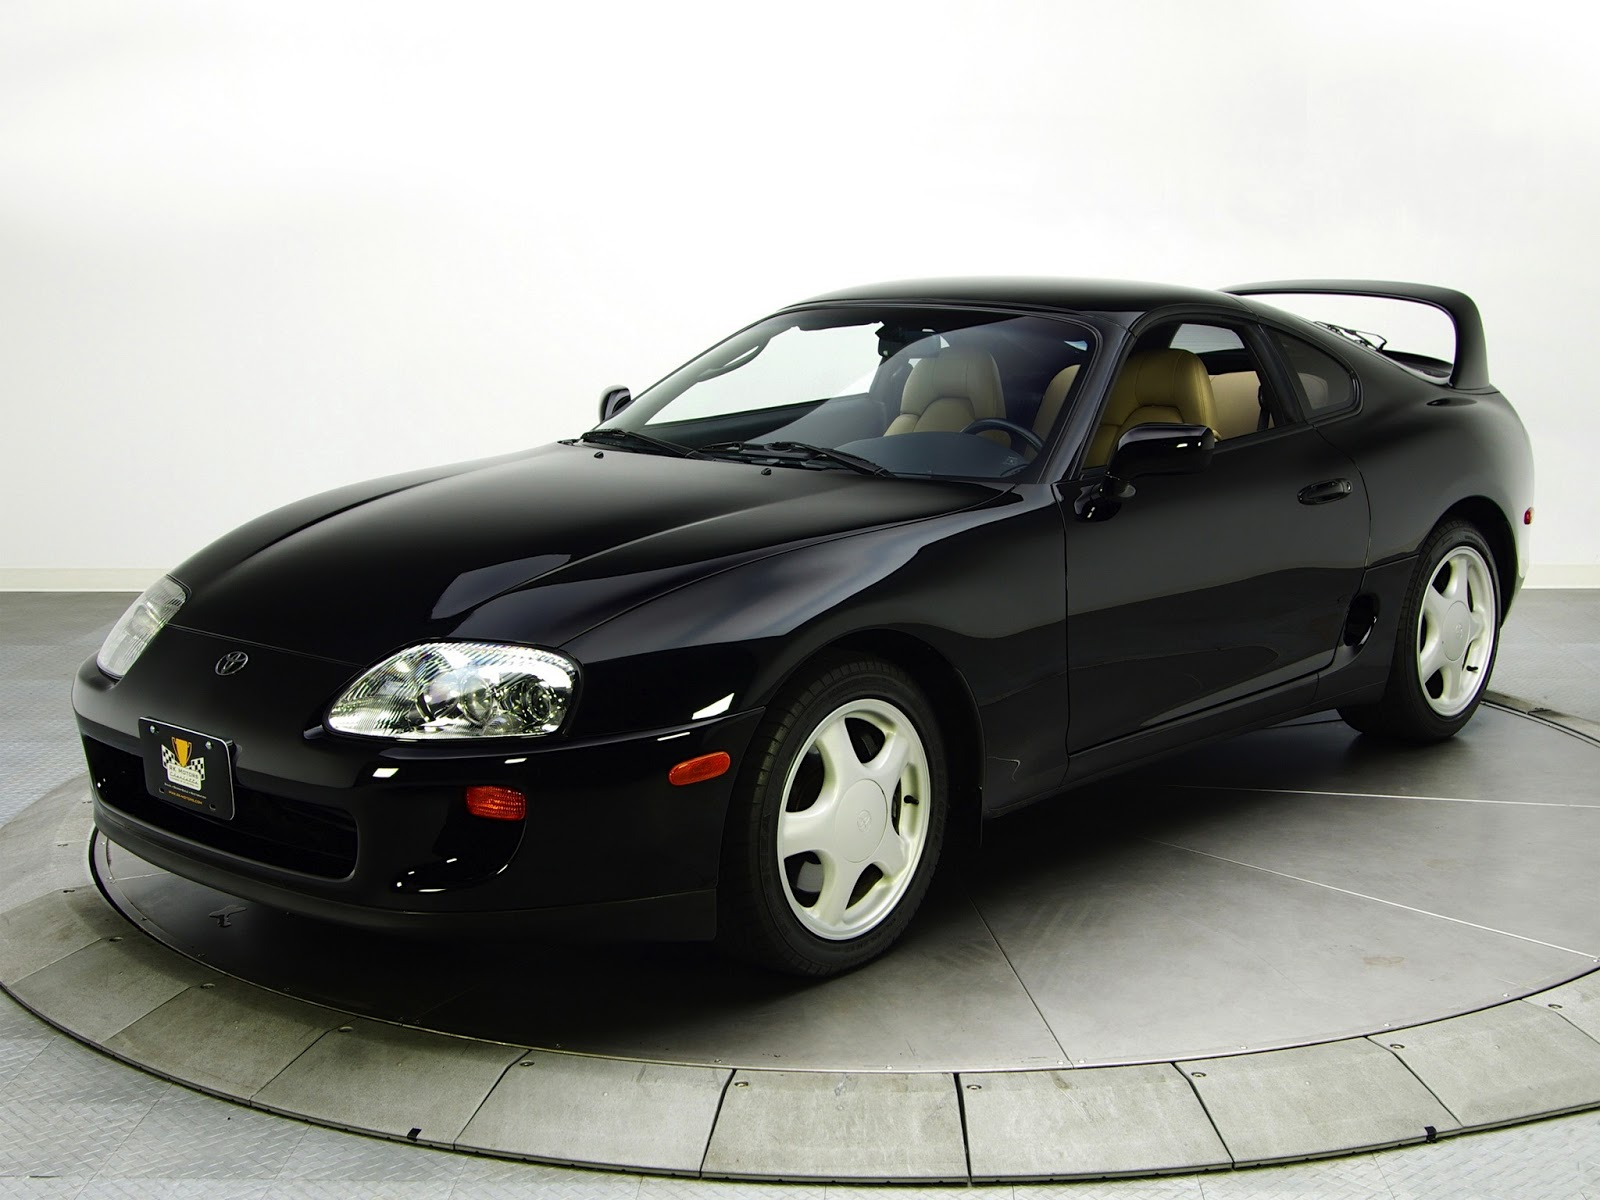 small resolution of supra sales to canada ceased in 1996 and to the us in 1998 production continued in japan until august 2002 ceasing owing to restrictive emission